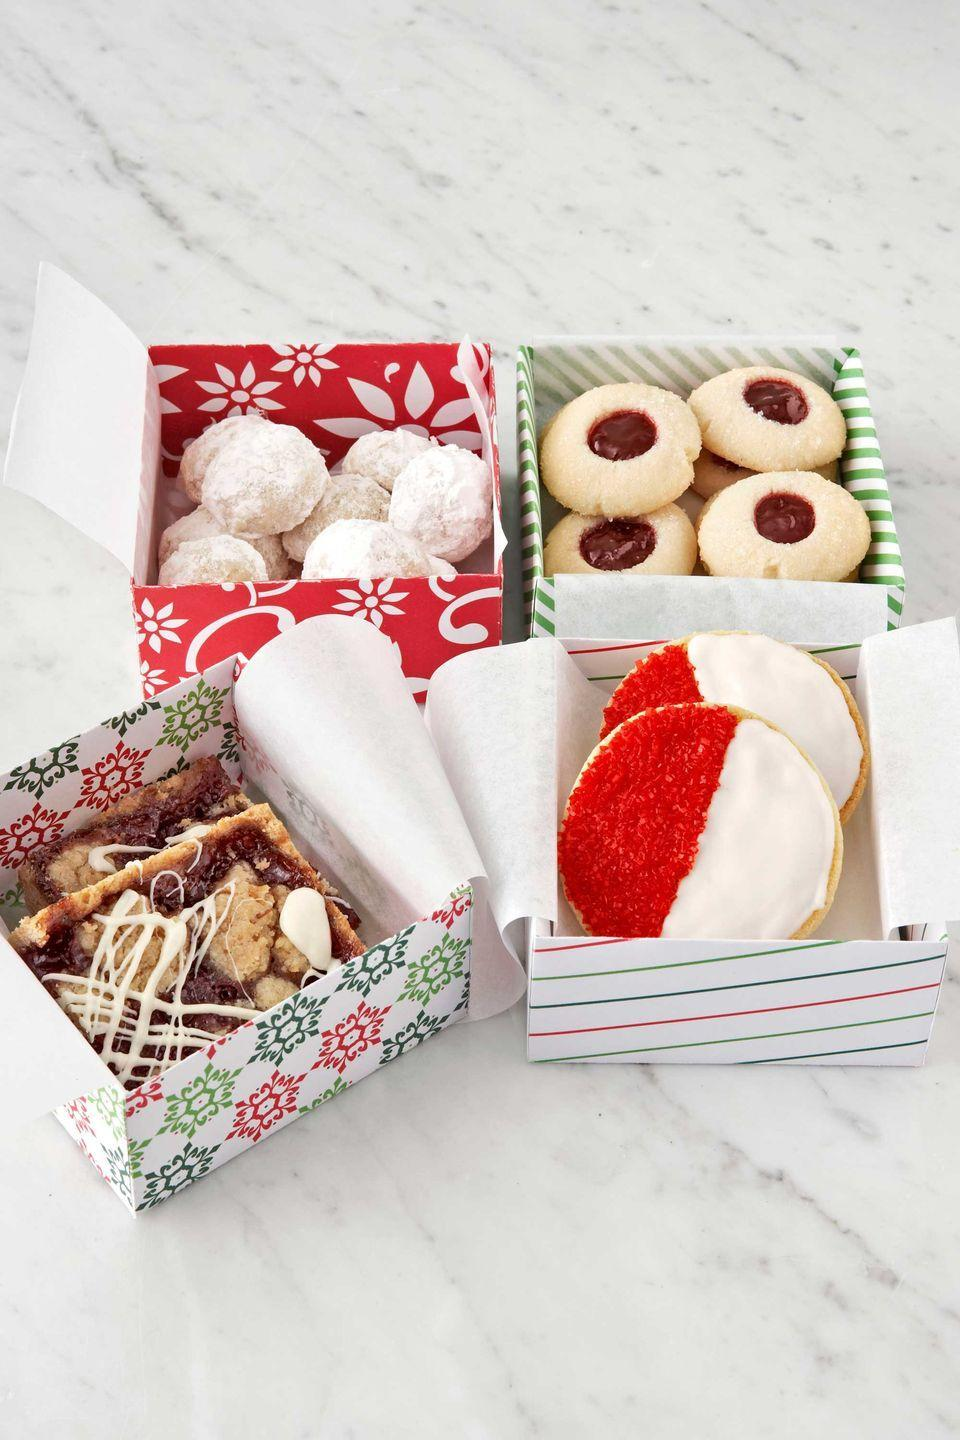 "<p>One tasty recipe yields four very different kinds of Christmas cookies. </p><p><strong>Recipes: </strong><a href=""https://www.countryliving.com/food-drinks/recipes/a3306/tea-cookie-dough/"" rel=""nofollow noopener"" target=""_blank"" data-ylk=""slk:Tea Cookie Dough"" class=""link rapid-noclick-resp""><strong>Tea Cookie Dough</strong></a></p><p><strong><a href=""https://www.countryliving.com/food-drinks/recipes/a3272/roly-poly-cookie-recipe/"" rel=""nofollow noopener"" target=""_blank"" data-ylk=""slk:Roly Polys"" class=""link rapid-noclick-resp"">Roly Polys</a> </strong></p><p><a href=""https://www.countryliving.com/food-drinks/recipes/a3271/jam-thumbprints-recipe/"" rel=""nofollow noopener"" target=""_blank"" data-ylk=""slk:Jam Thumbprints"" class=""link rapid-noclick-resp""><strong>Jam Thumbprints</strong></a></p><p><strong><a href=""https://www.countryliving.com/food-drinks/recipes/a3267/red-and-white-cookie-recipe/"" rel=""nofollow noopener"" target=""_blank"" data-ylk=""slk:Red-and-Whites"" class=""link rapid-noclick-resp"">Red-and-Whites</a> </strong></p><p><a href=""https://www.countryliving.com/food-drinks/recipes/a3269/raspberry-bars-recipe/"" rel=""nofollow noopener"" target=""_blank"" data-ylk=""slk:Raspberry Bars"" class=""link rapid-noclick-resp""><strong>Raspberry Bars</strong></a></p>"